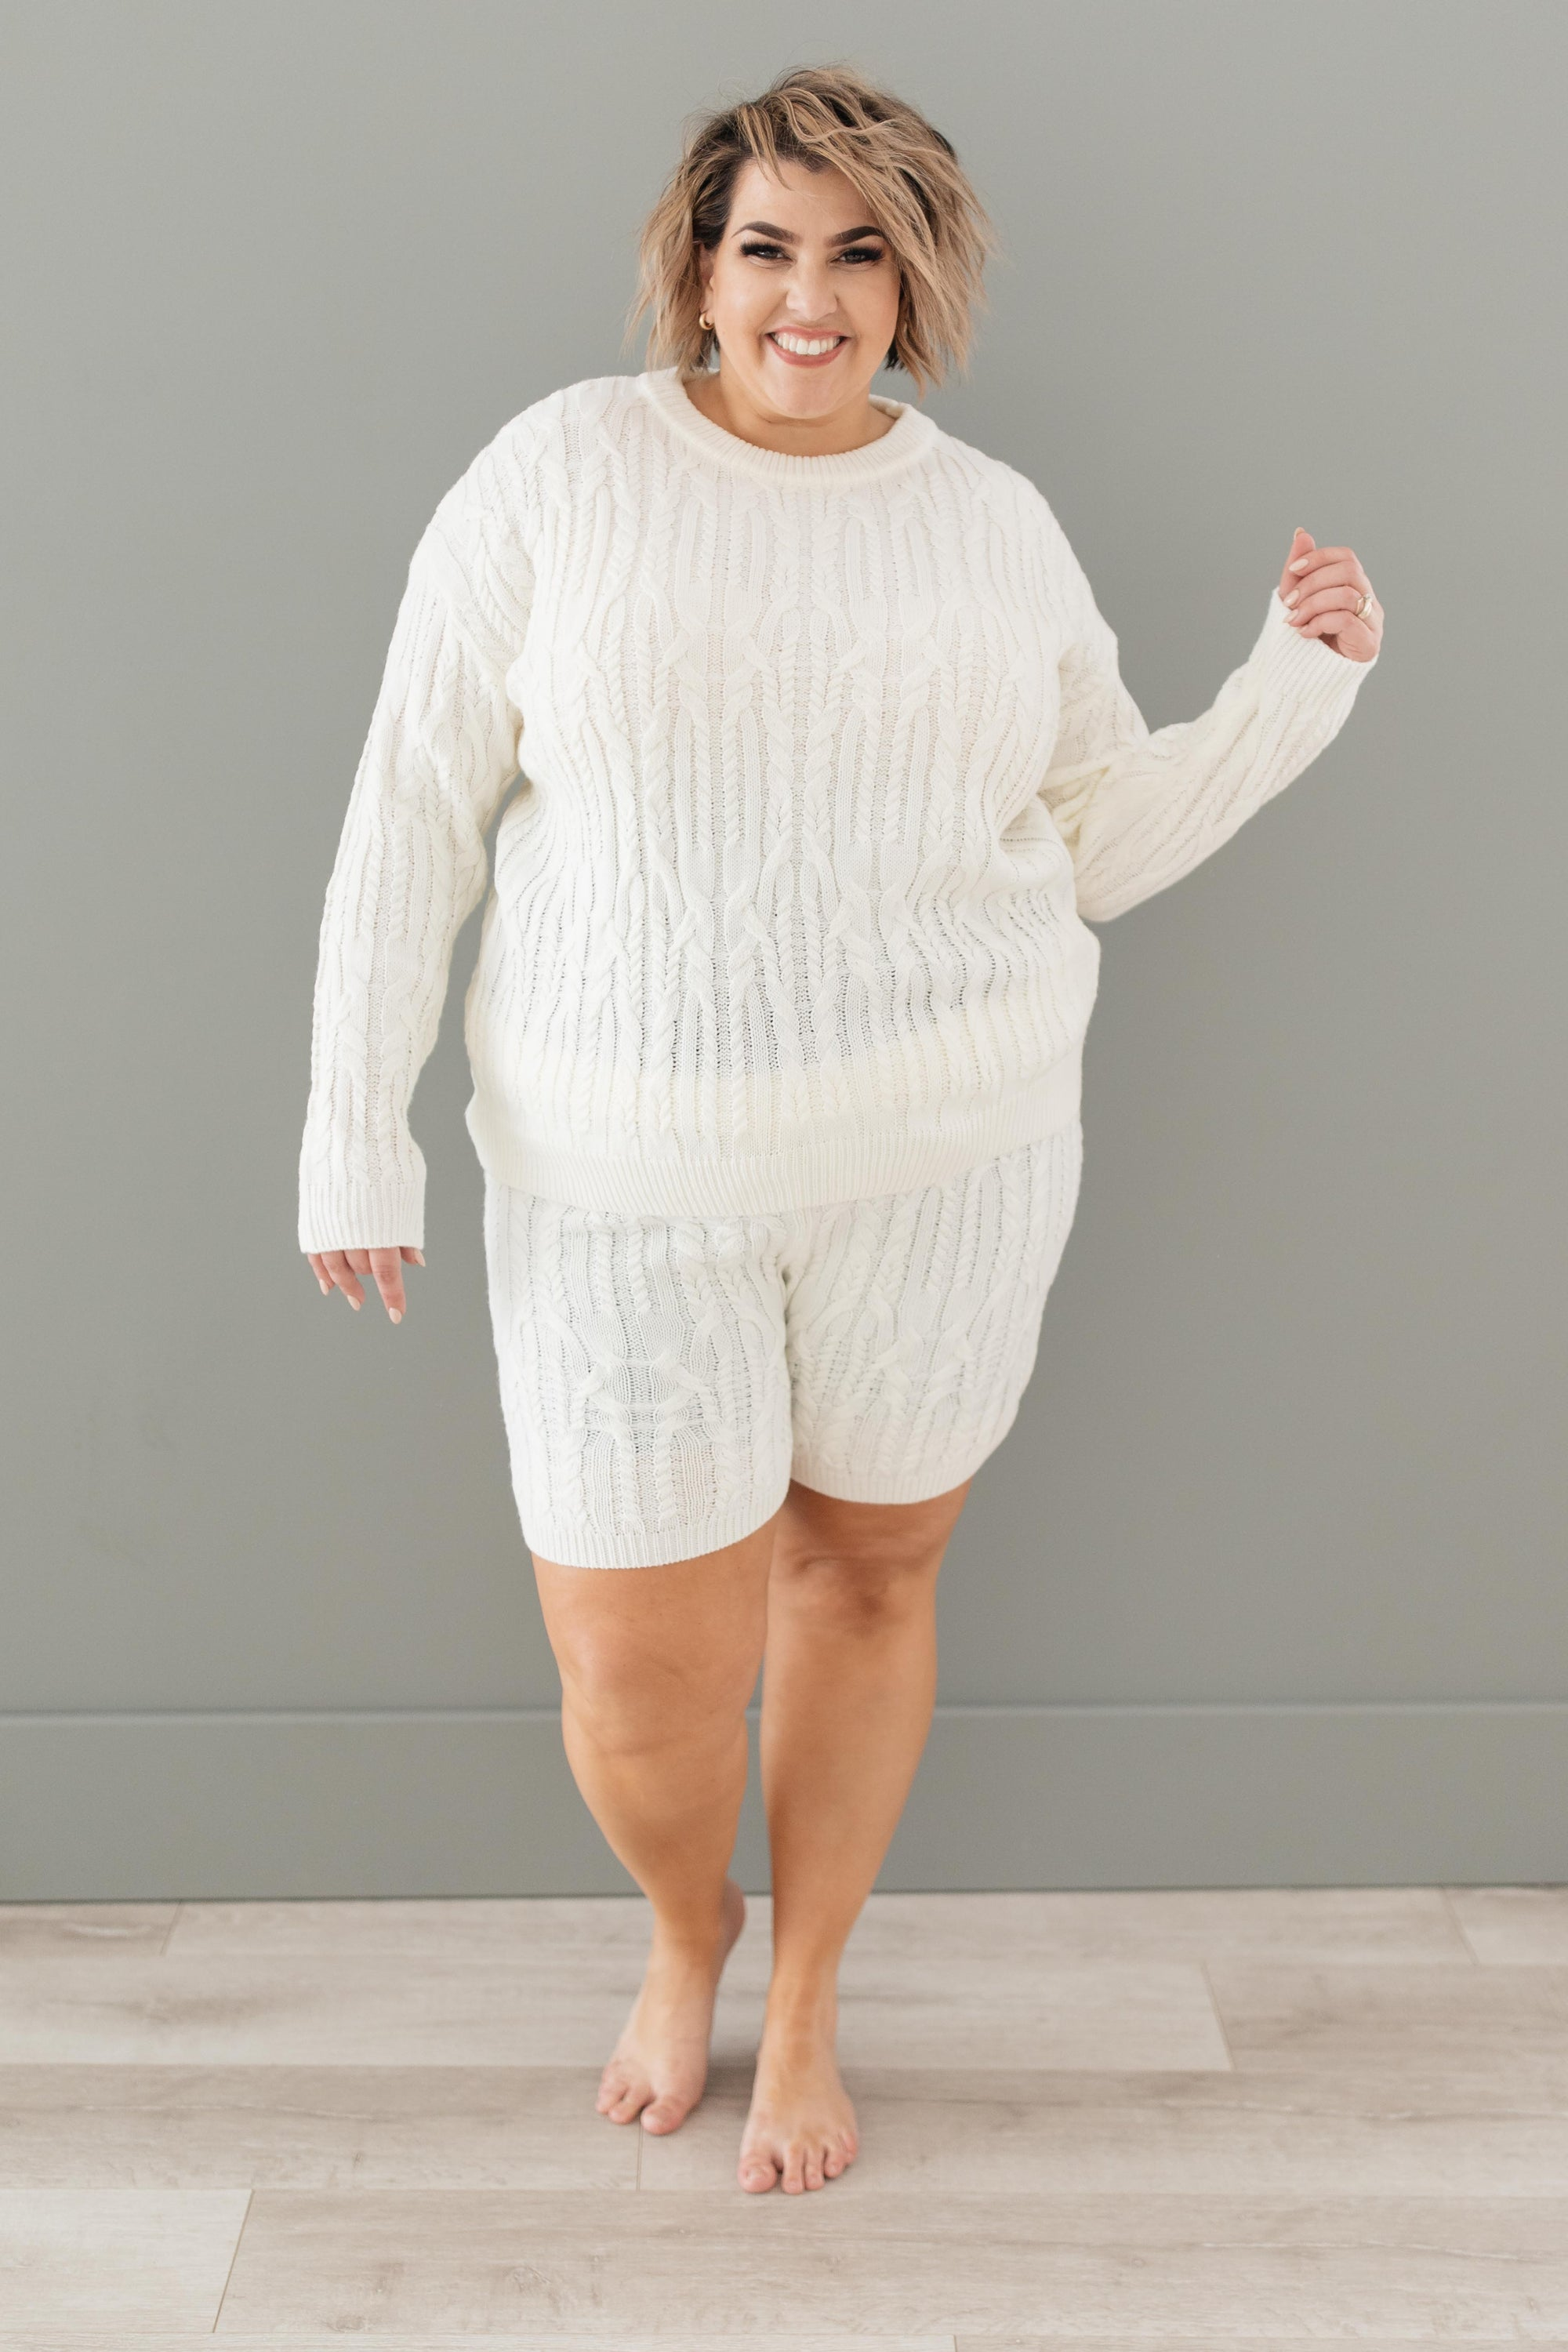 Annie Knit Top in Cream-[option4]-[option5]-[option6]-[option7]-[option8]-Womens-Clothing-Shop